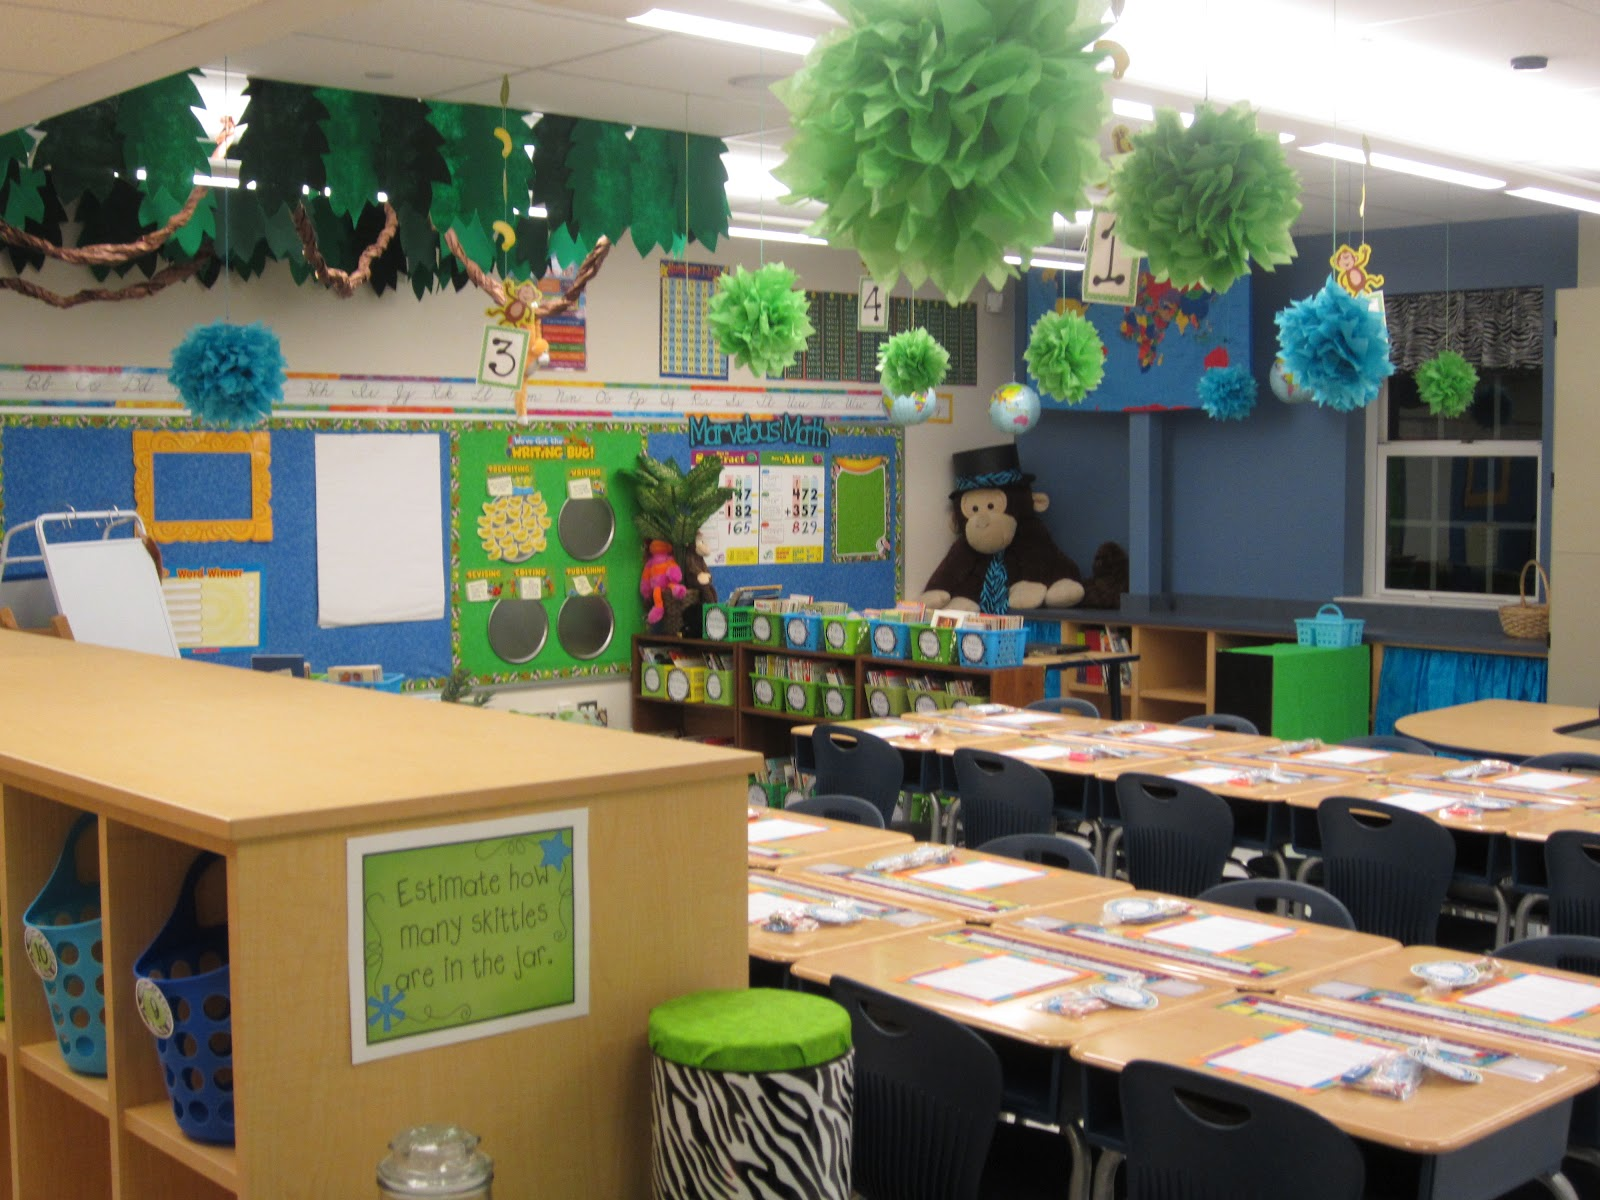 Pictures Of Classroom Design Ideas ~ The creative chalkboard classroom tour pictures galore